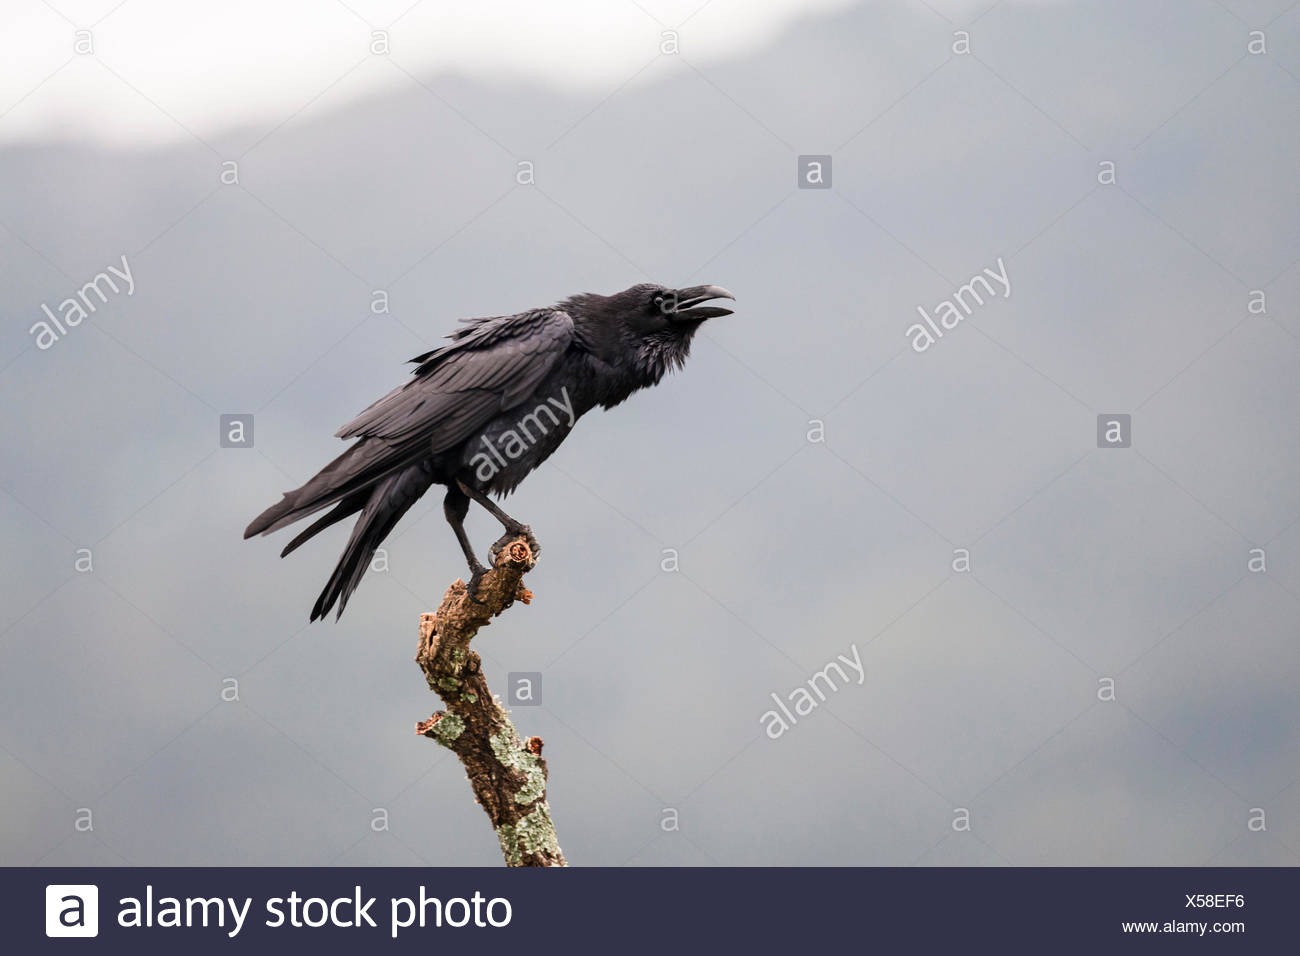 Common Raven (Corvus corax), adult perched on branch calling, Extremadura, Spain - Stock Image